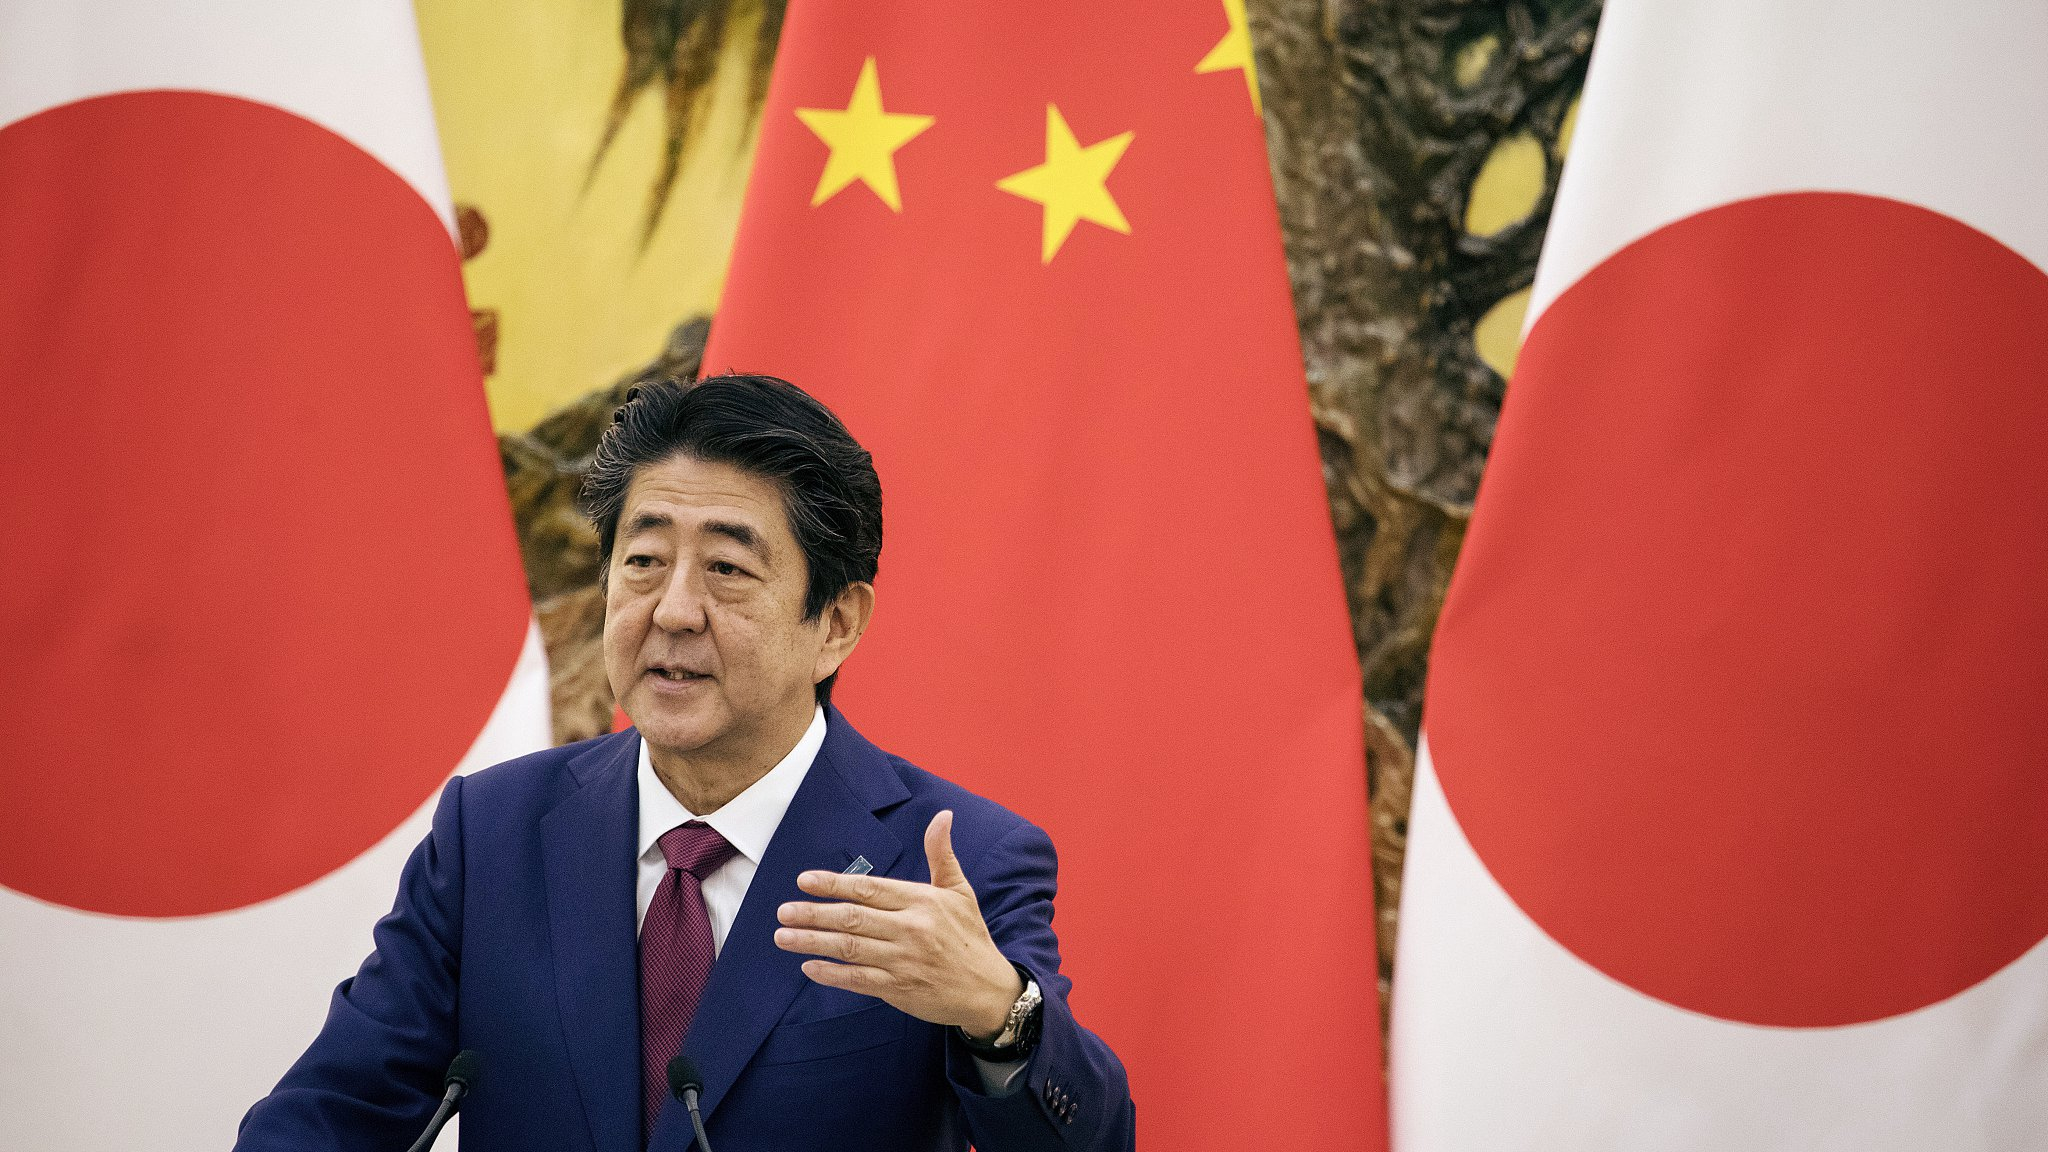 China vows to further improve Sino-Japanese ties amid Abe's resign